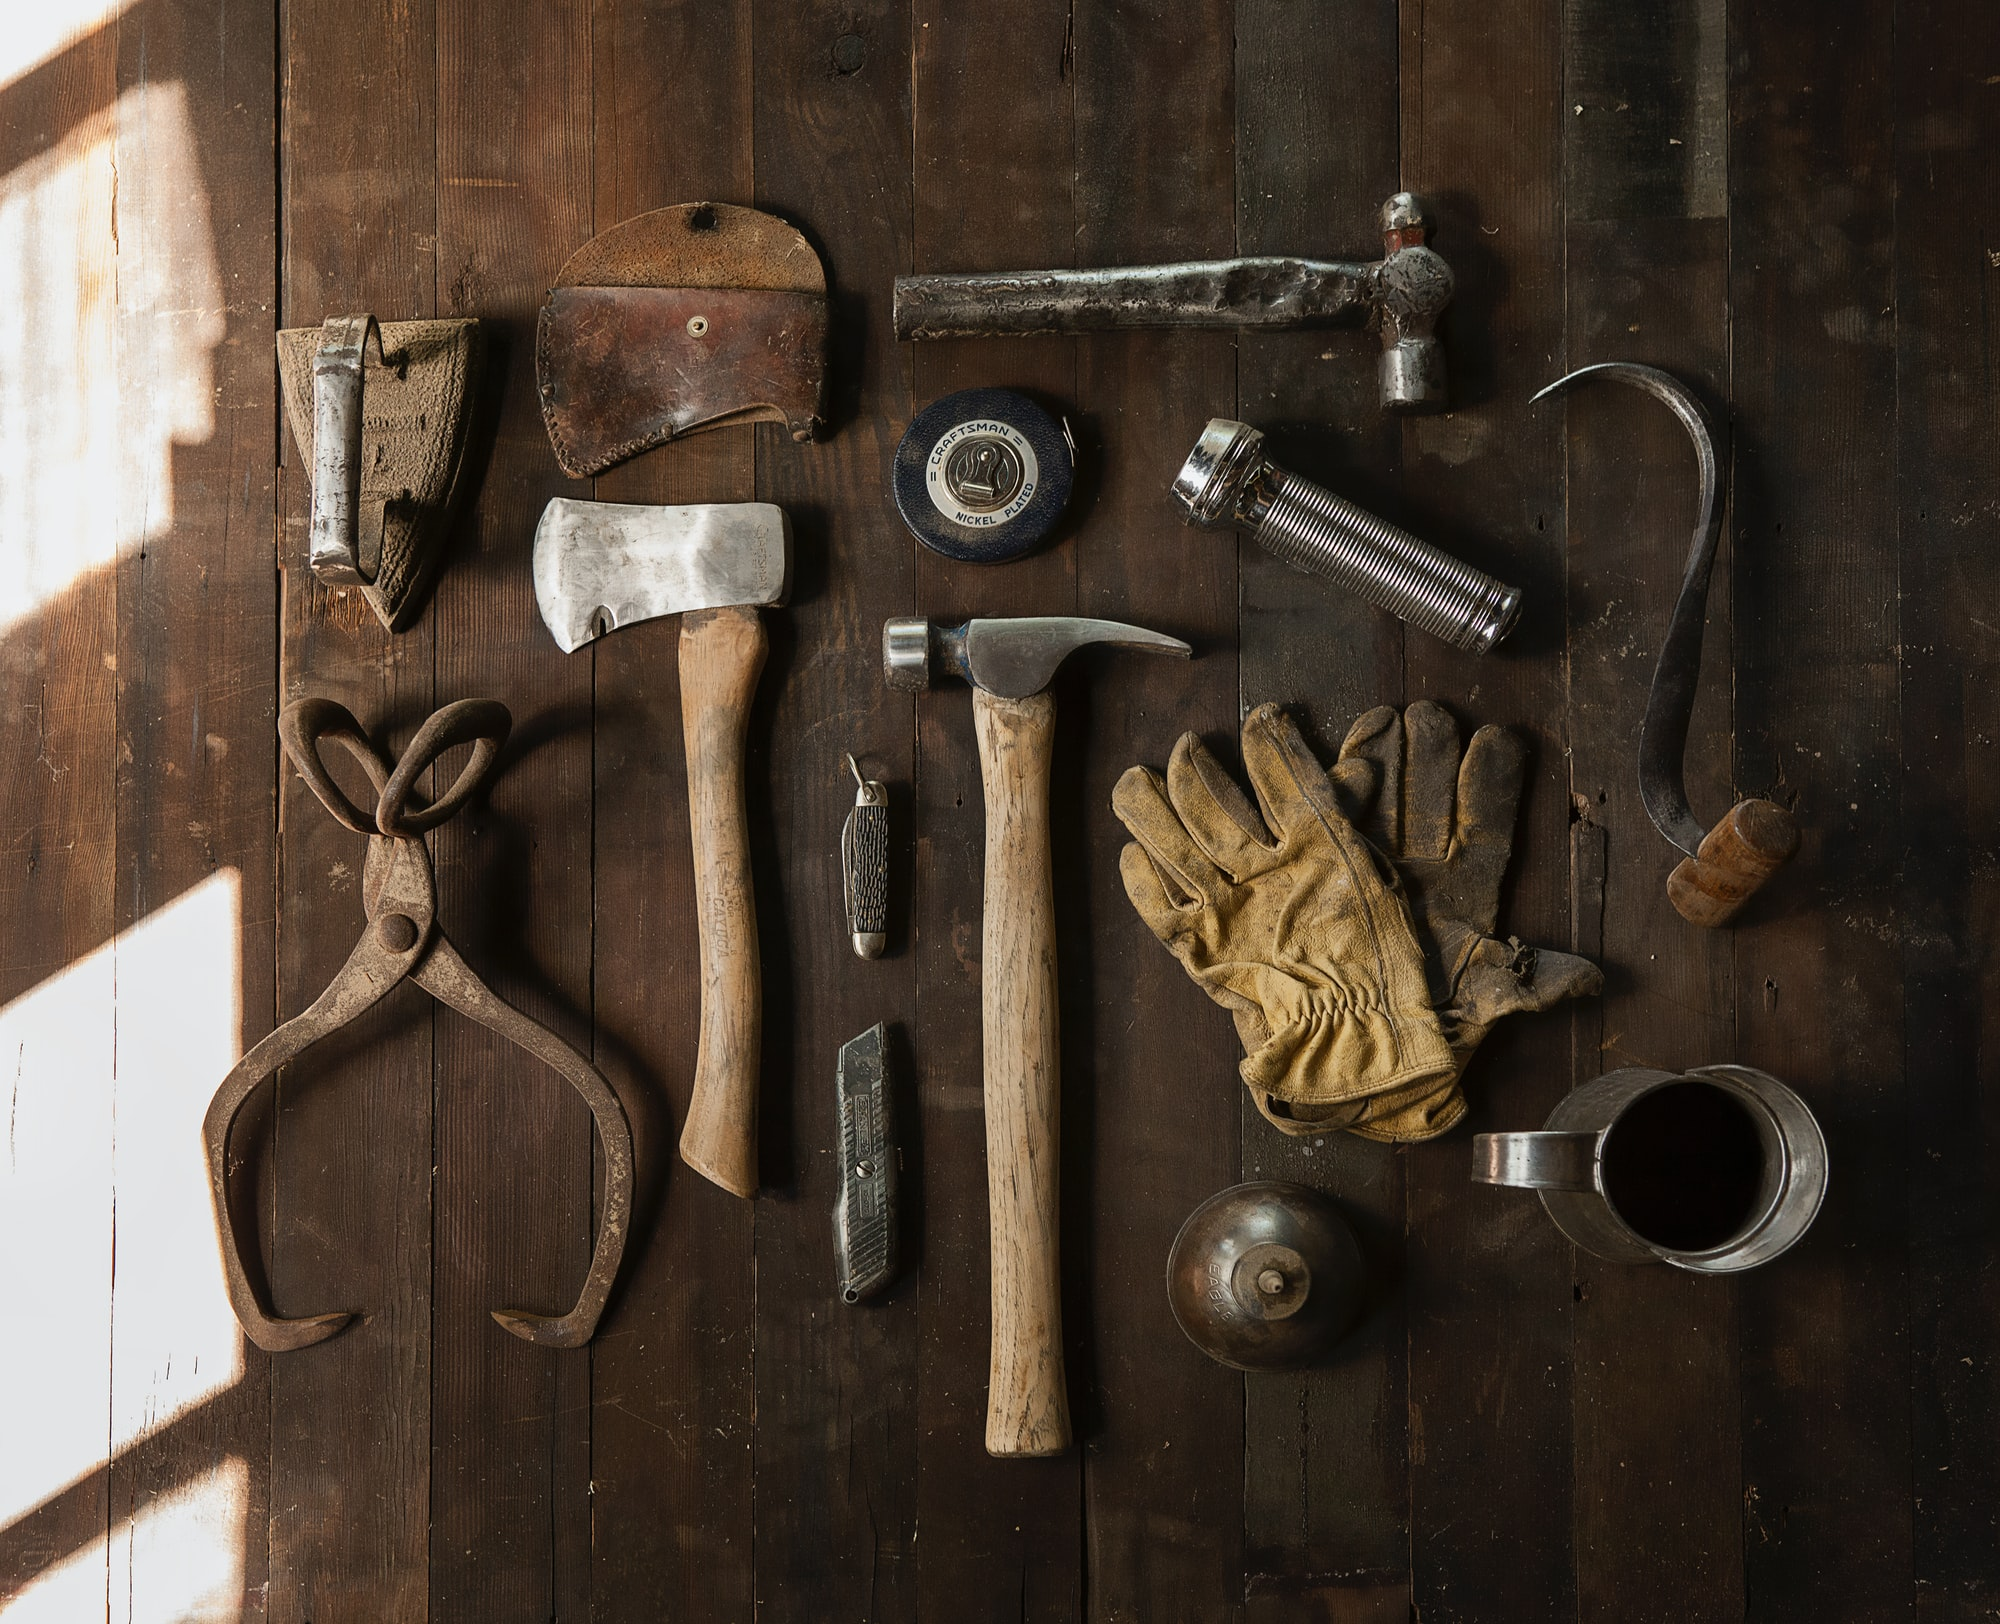 Empowering engineers: The new DevOps tool stack